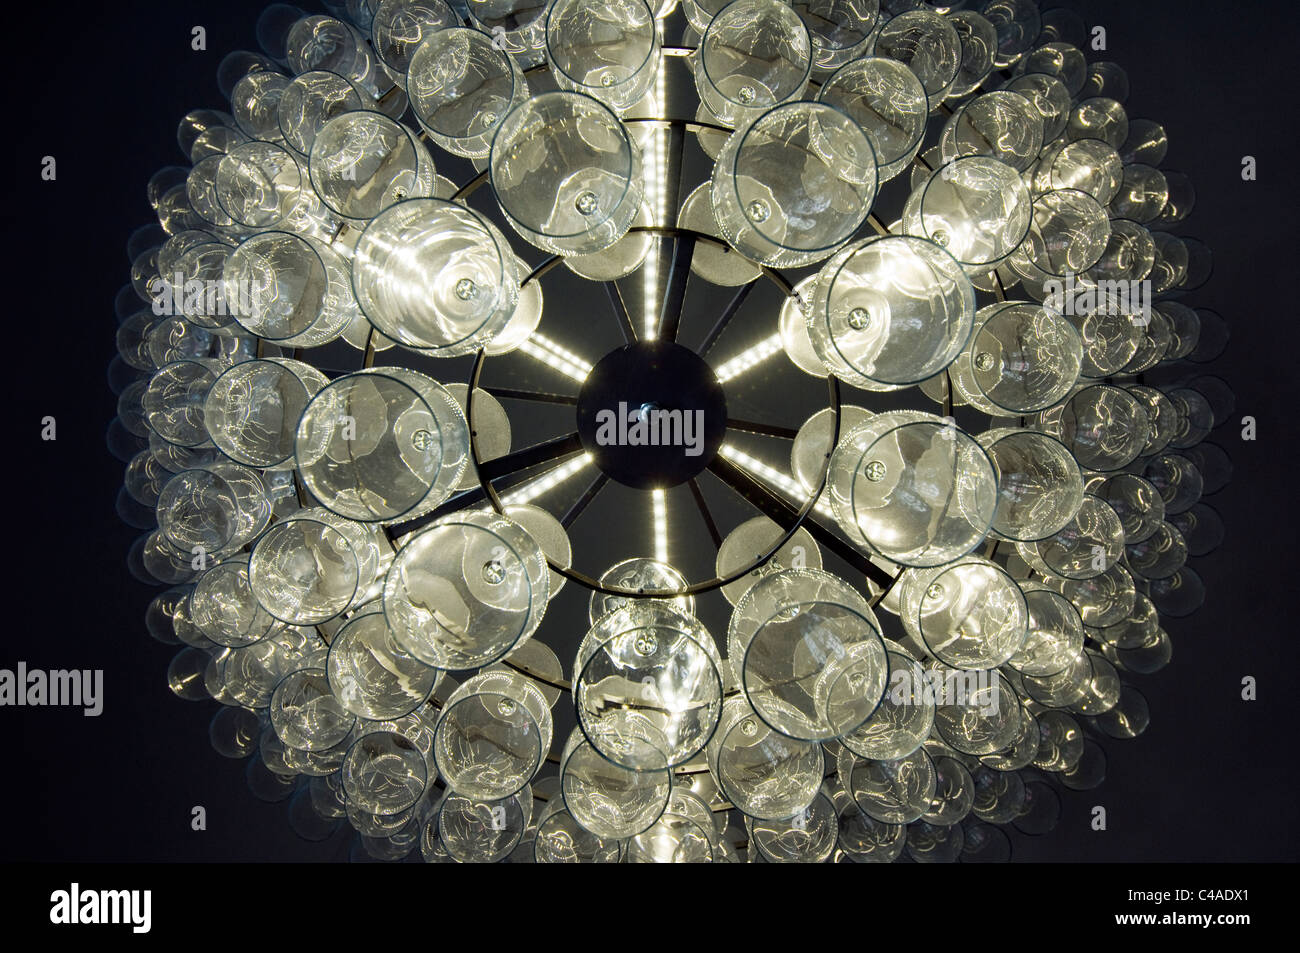 A chandelier made from wine glasses stock photo 37109801 alamy a chandelier made from wine glasses aloadofball